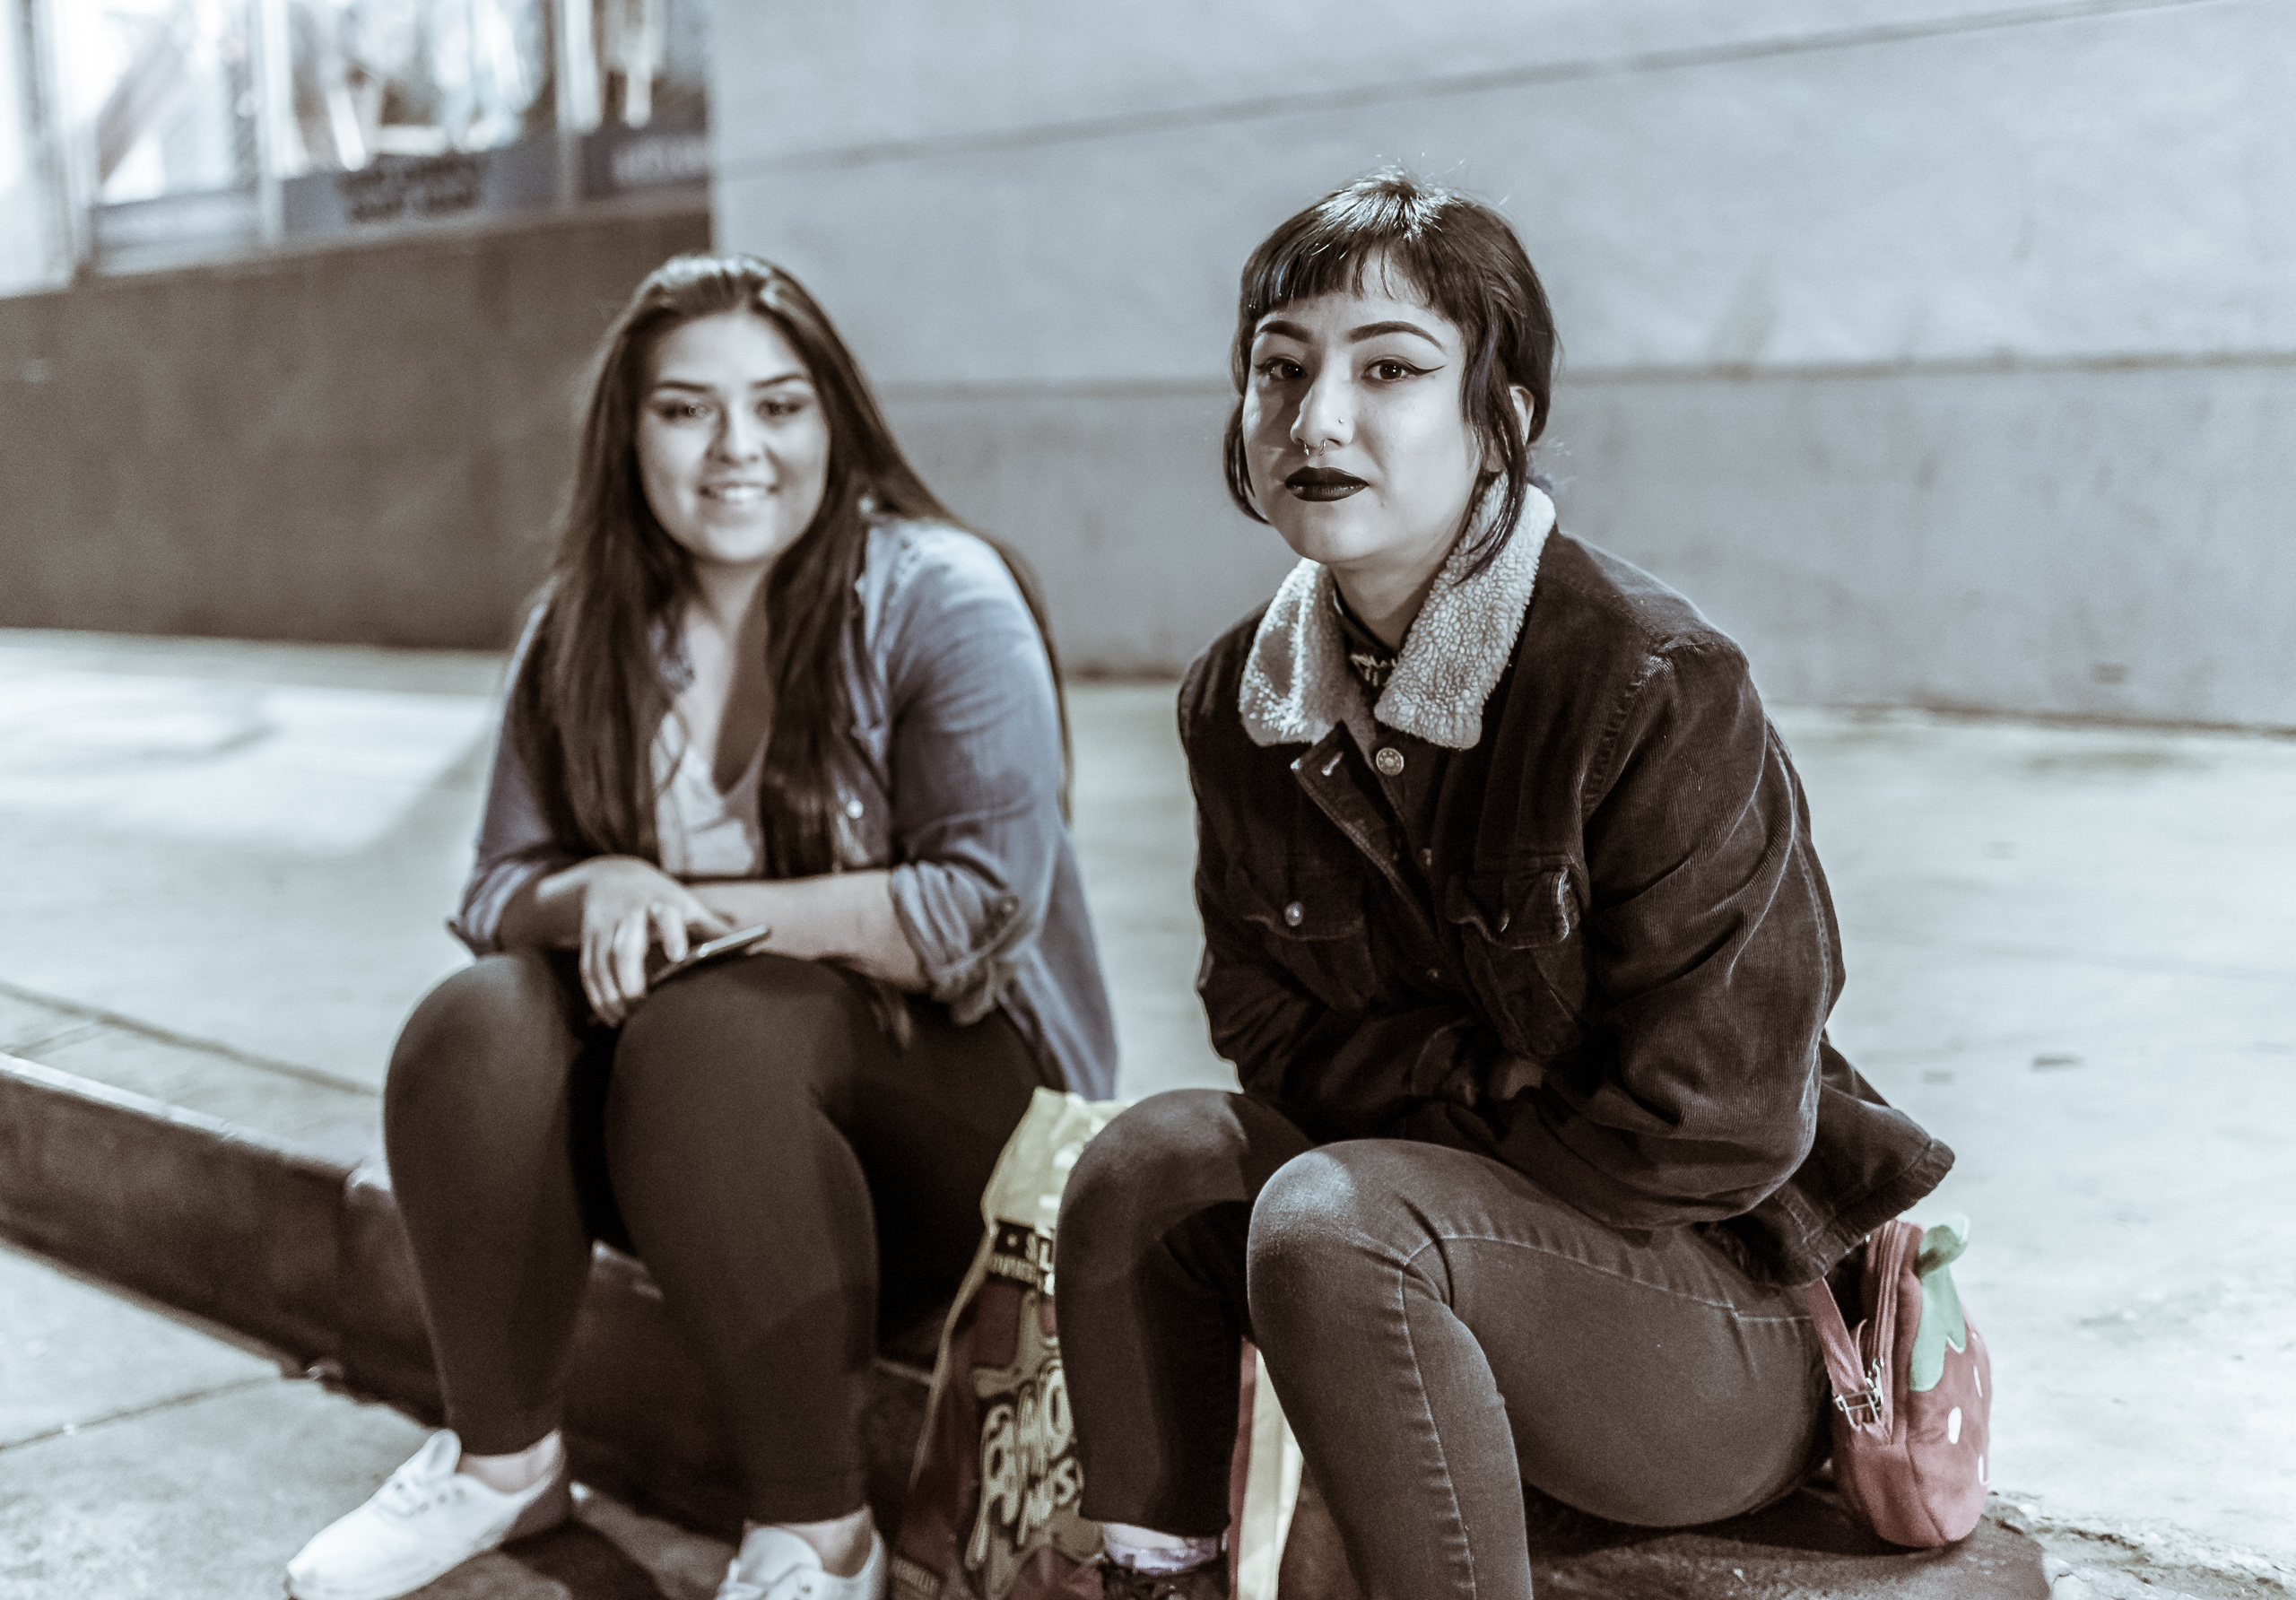 two women sitting on the curb on Ivar Avenue outside Amoeba Music in Hollywood, Los Angeles, California